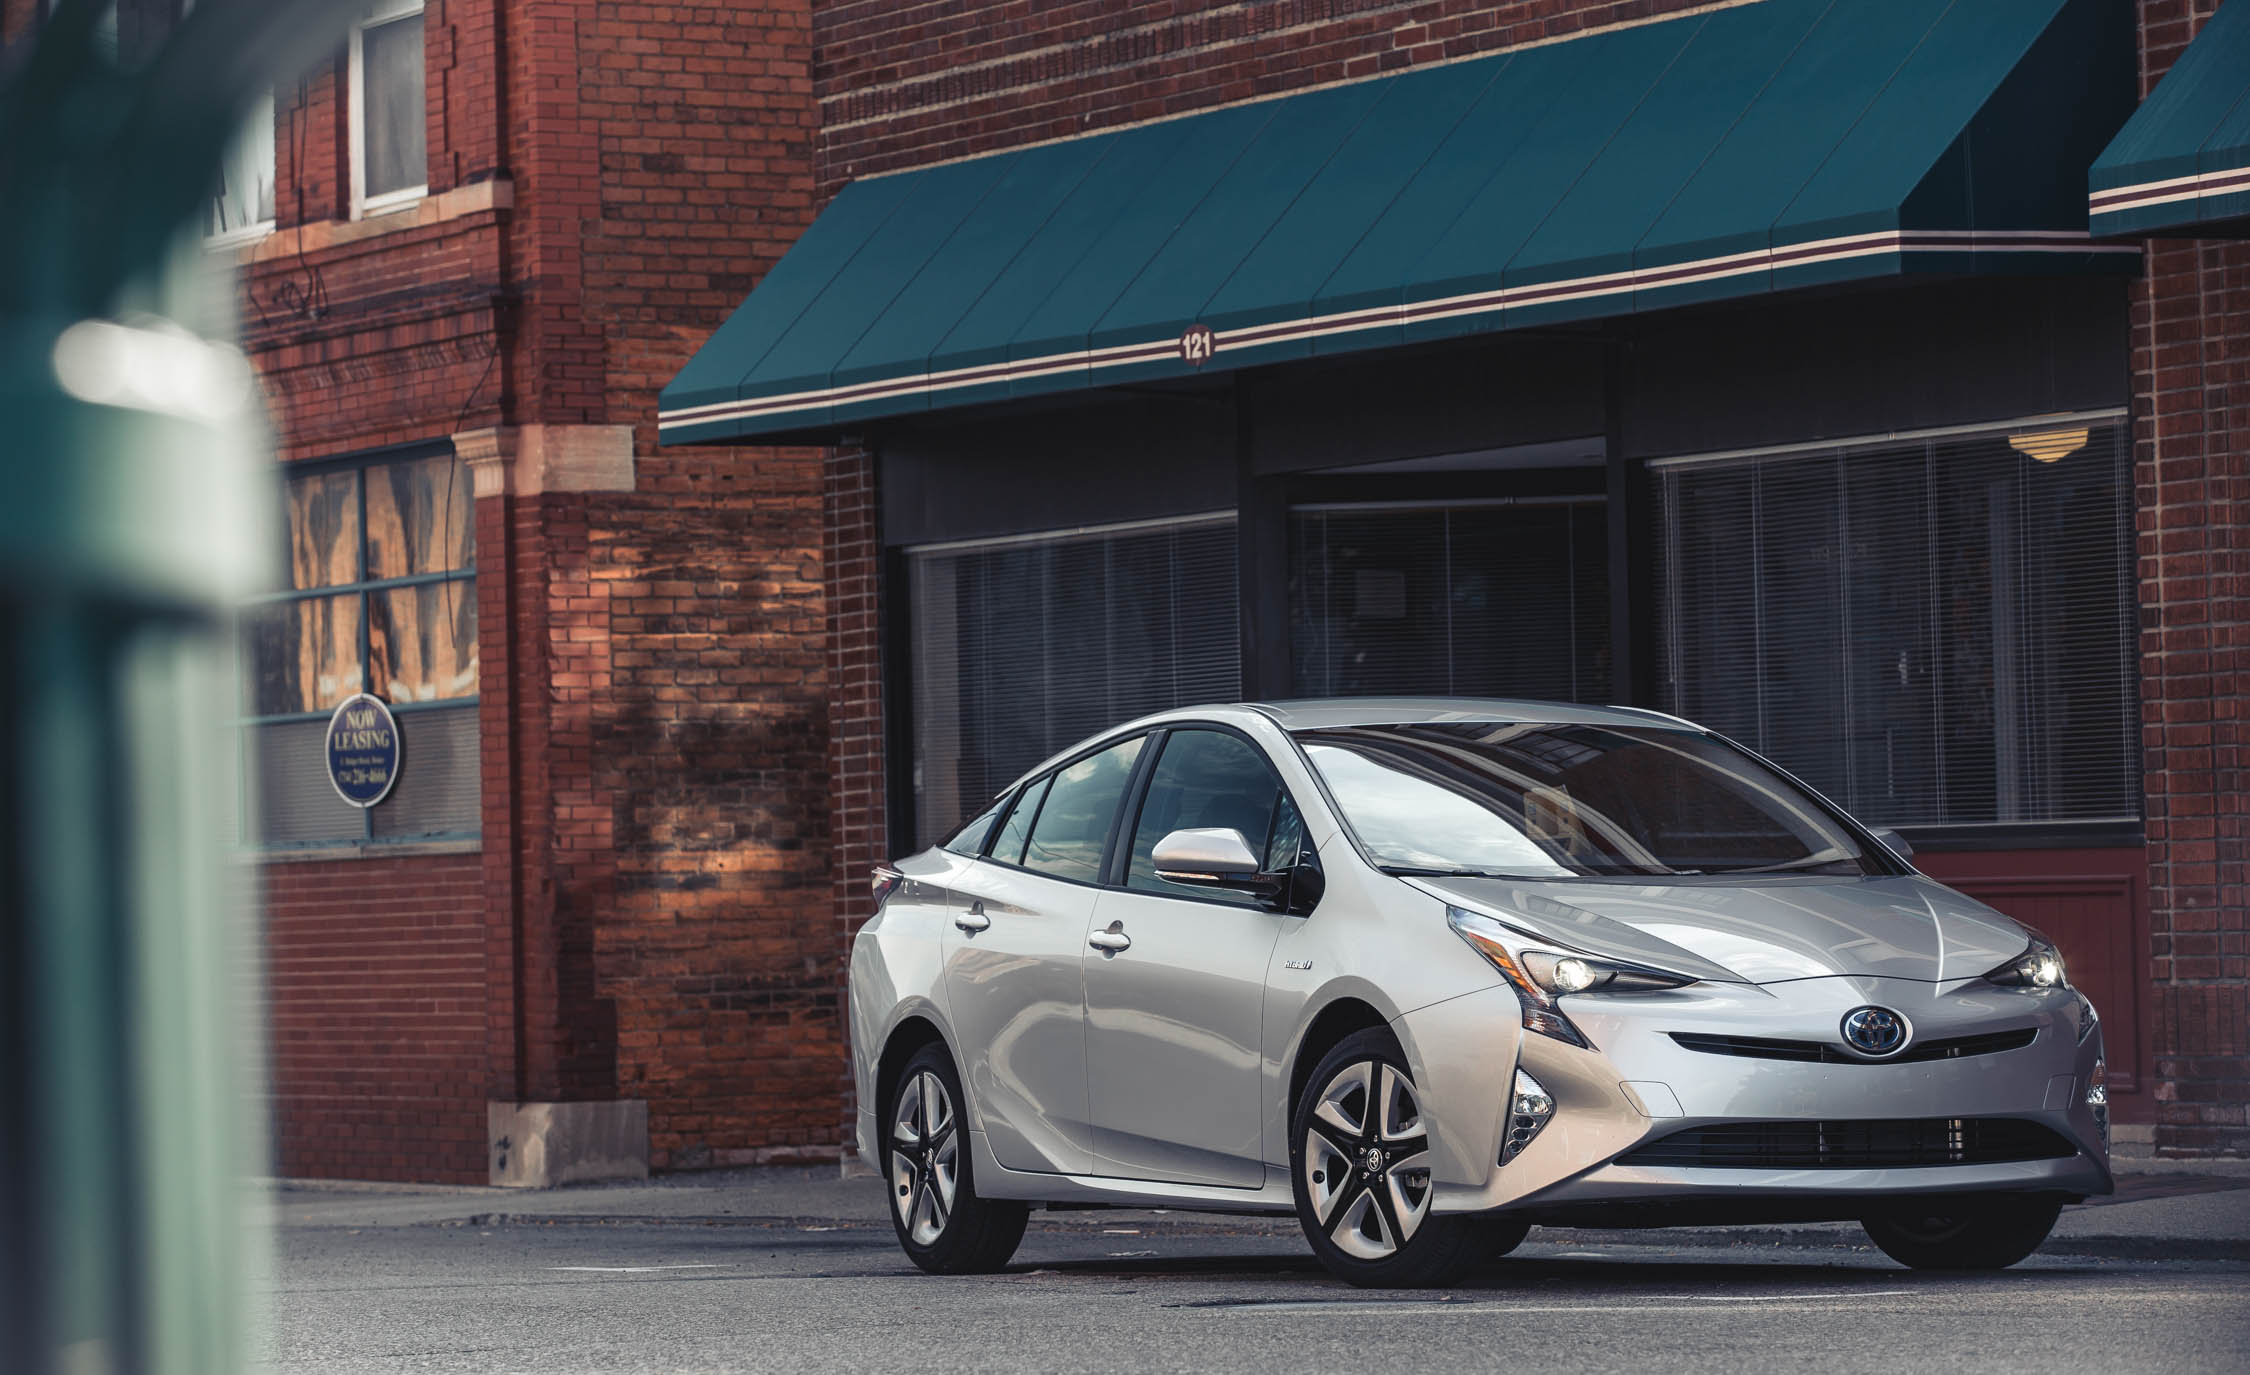 2017 Toyota Prius Exterior Silver Metallic (Photo 34 of 64)